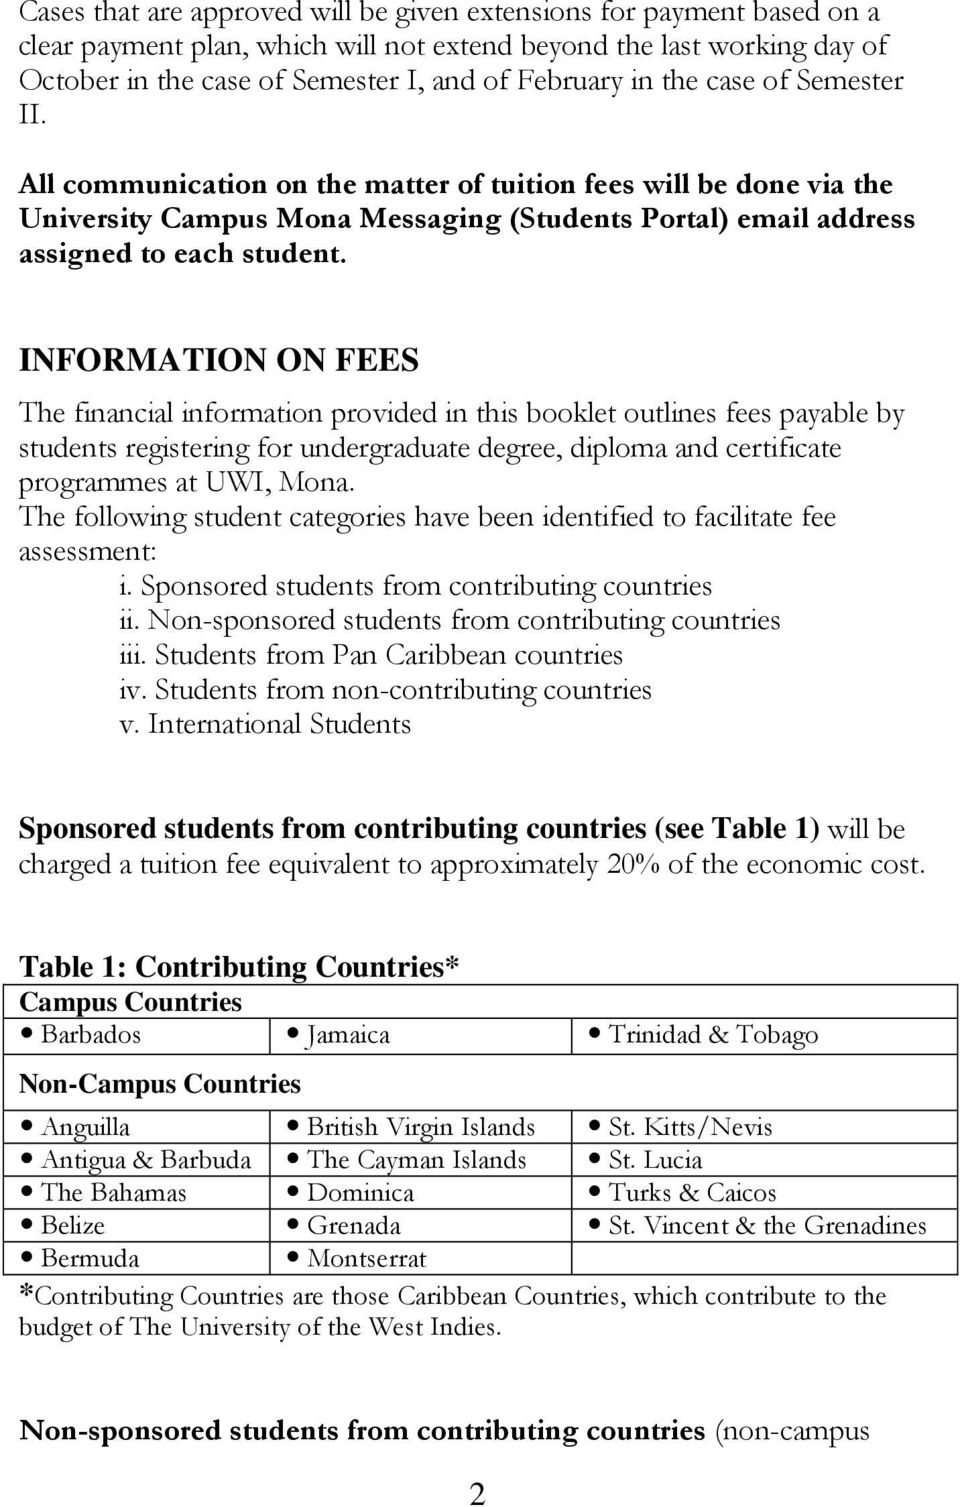 INFORMATION ON FEES The financial information provided in this booklet outlines fees payable by students registering for undergraduate degree, diploma and certificate programmes at UWI, Mona.